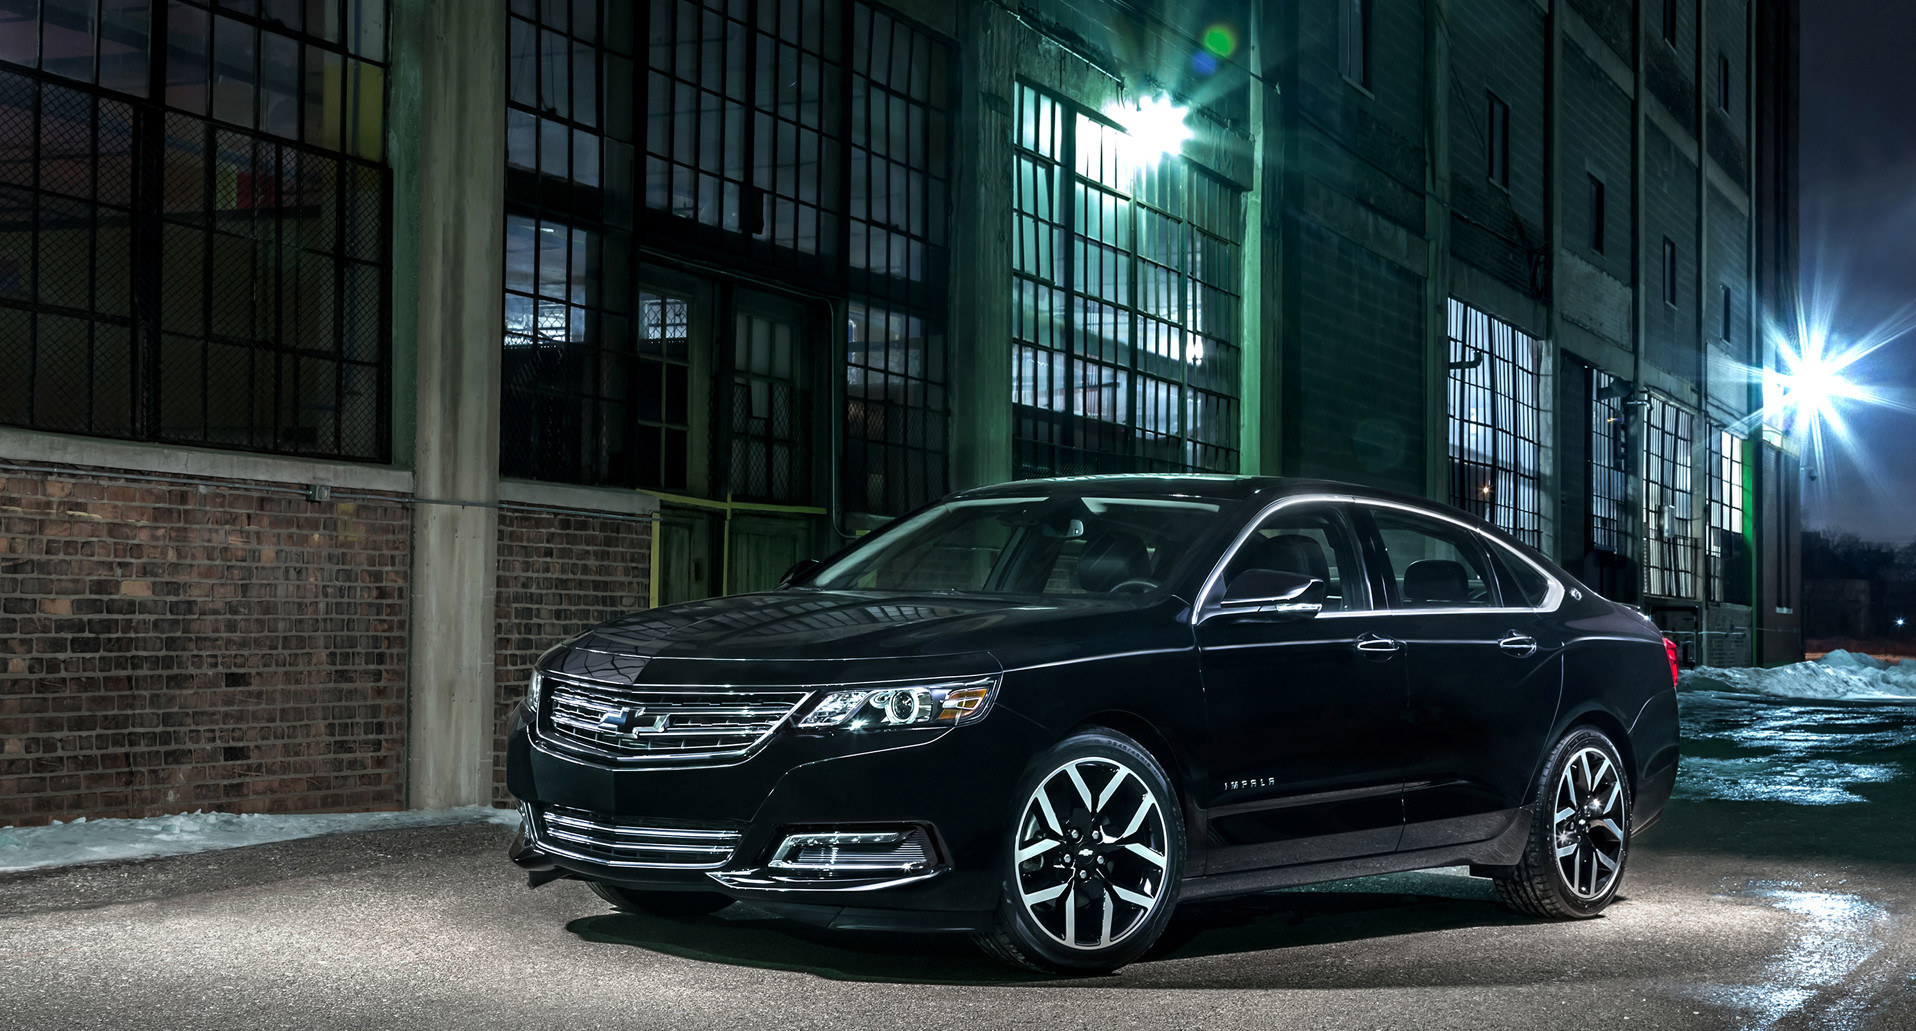 2016 Chevrolet Impala Midnight Edition Preview (Photo 9 of 11)